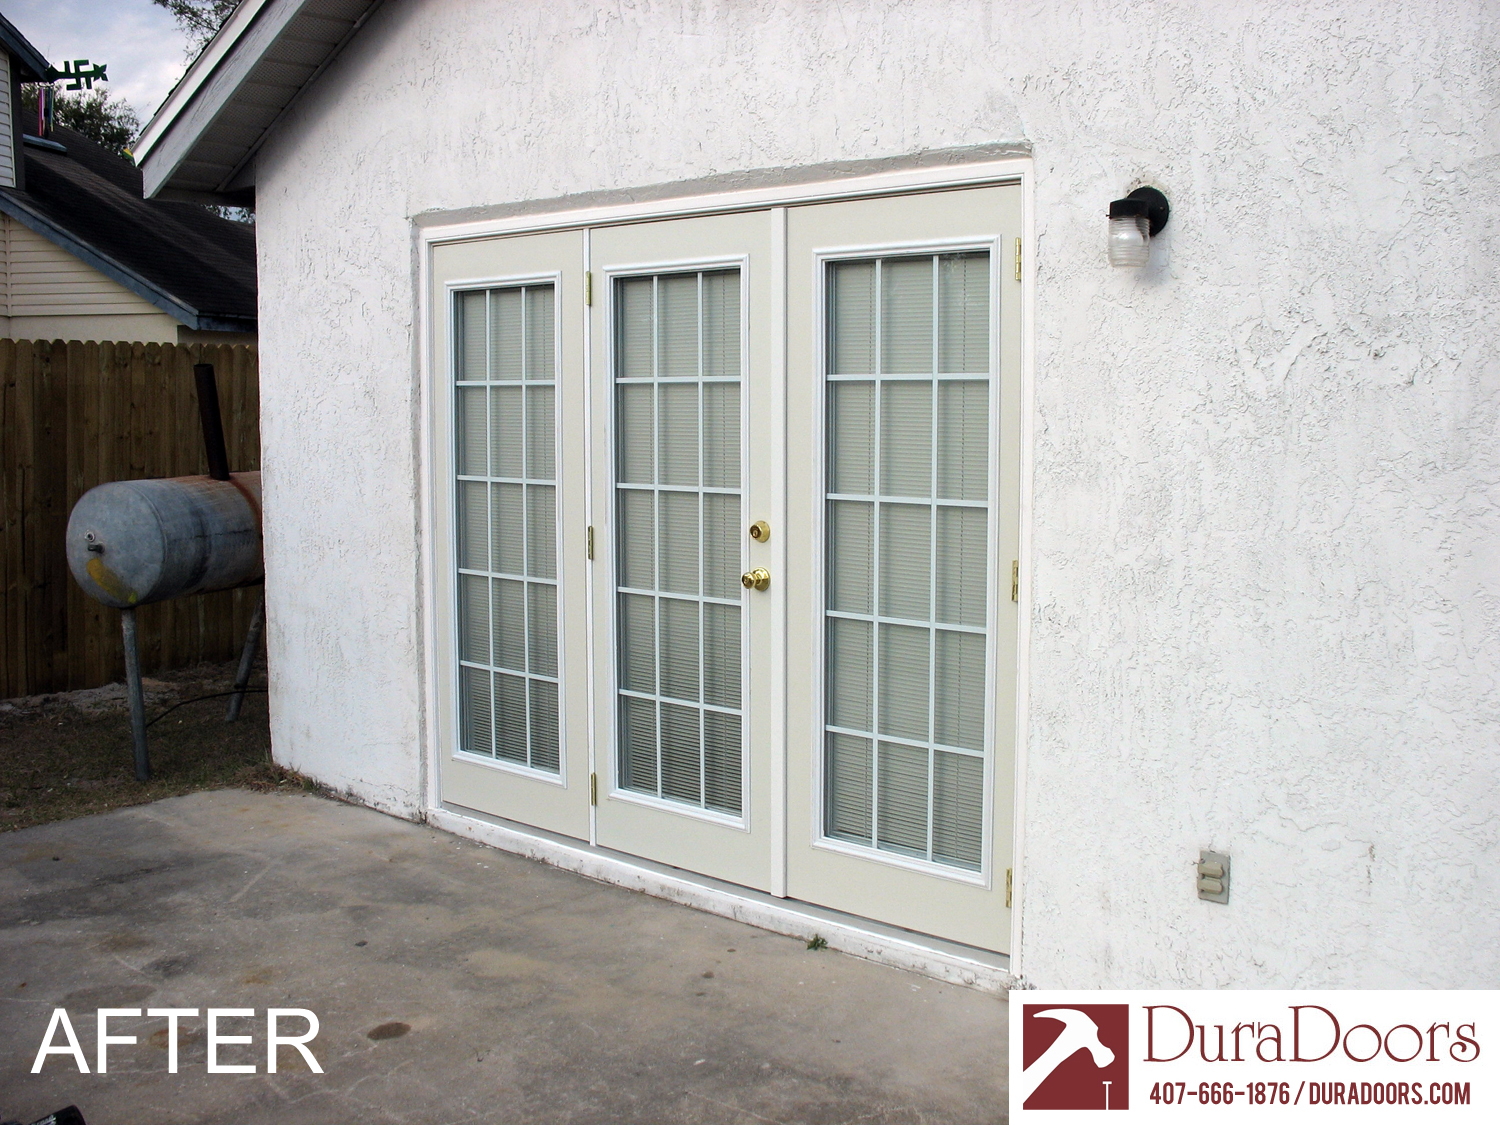 This Customer In Winter Garden, FL, Asked Us To Get Rid Of Their Old  Sliding Glass Doors And Wanted A New 15 Light French Door Unit.